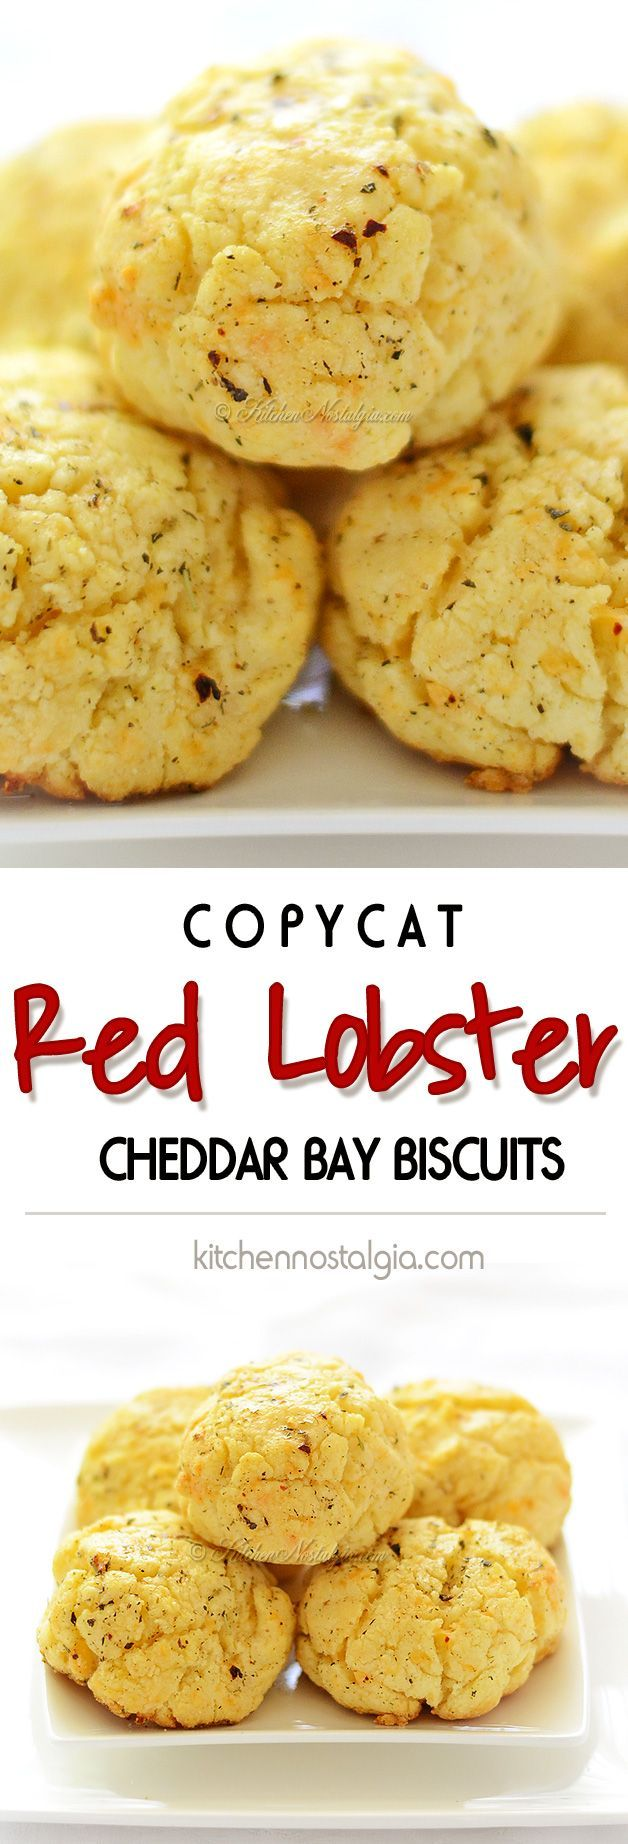 Copycat Red Lobster Biscuits Recipe Red lobster